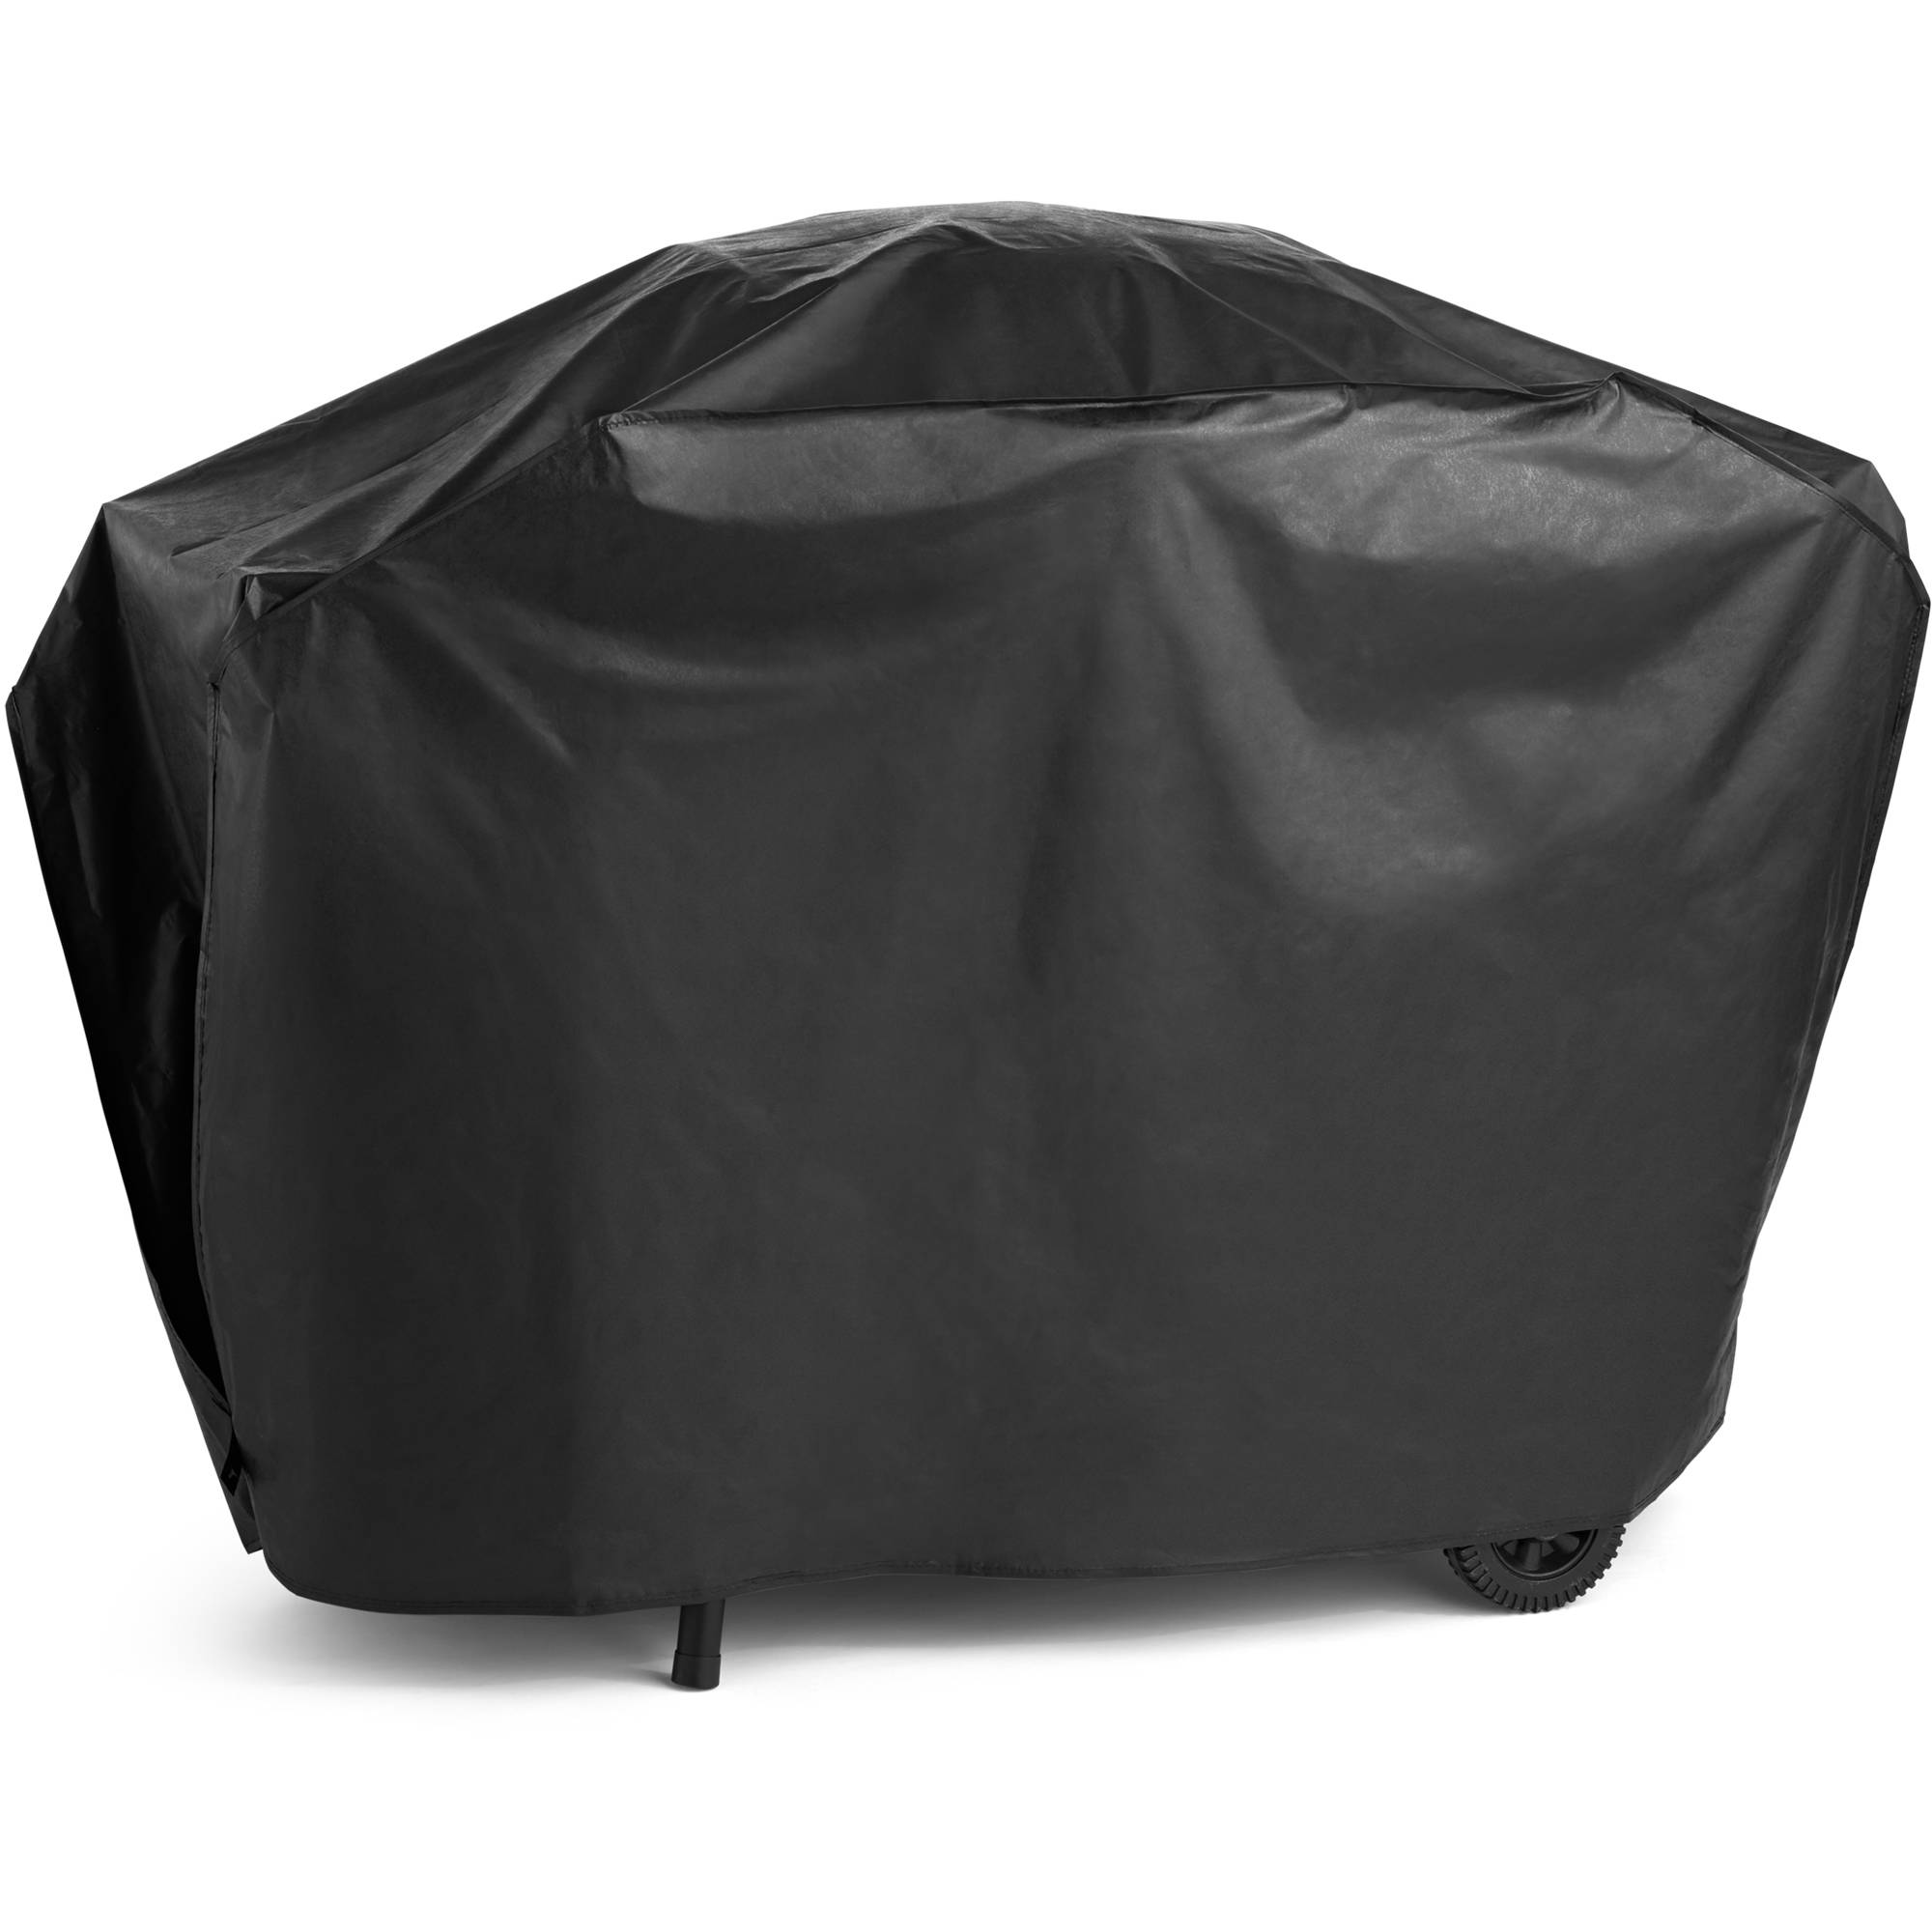 expert grill 60 inch grill cover walmart com